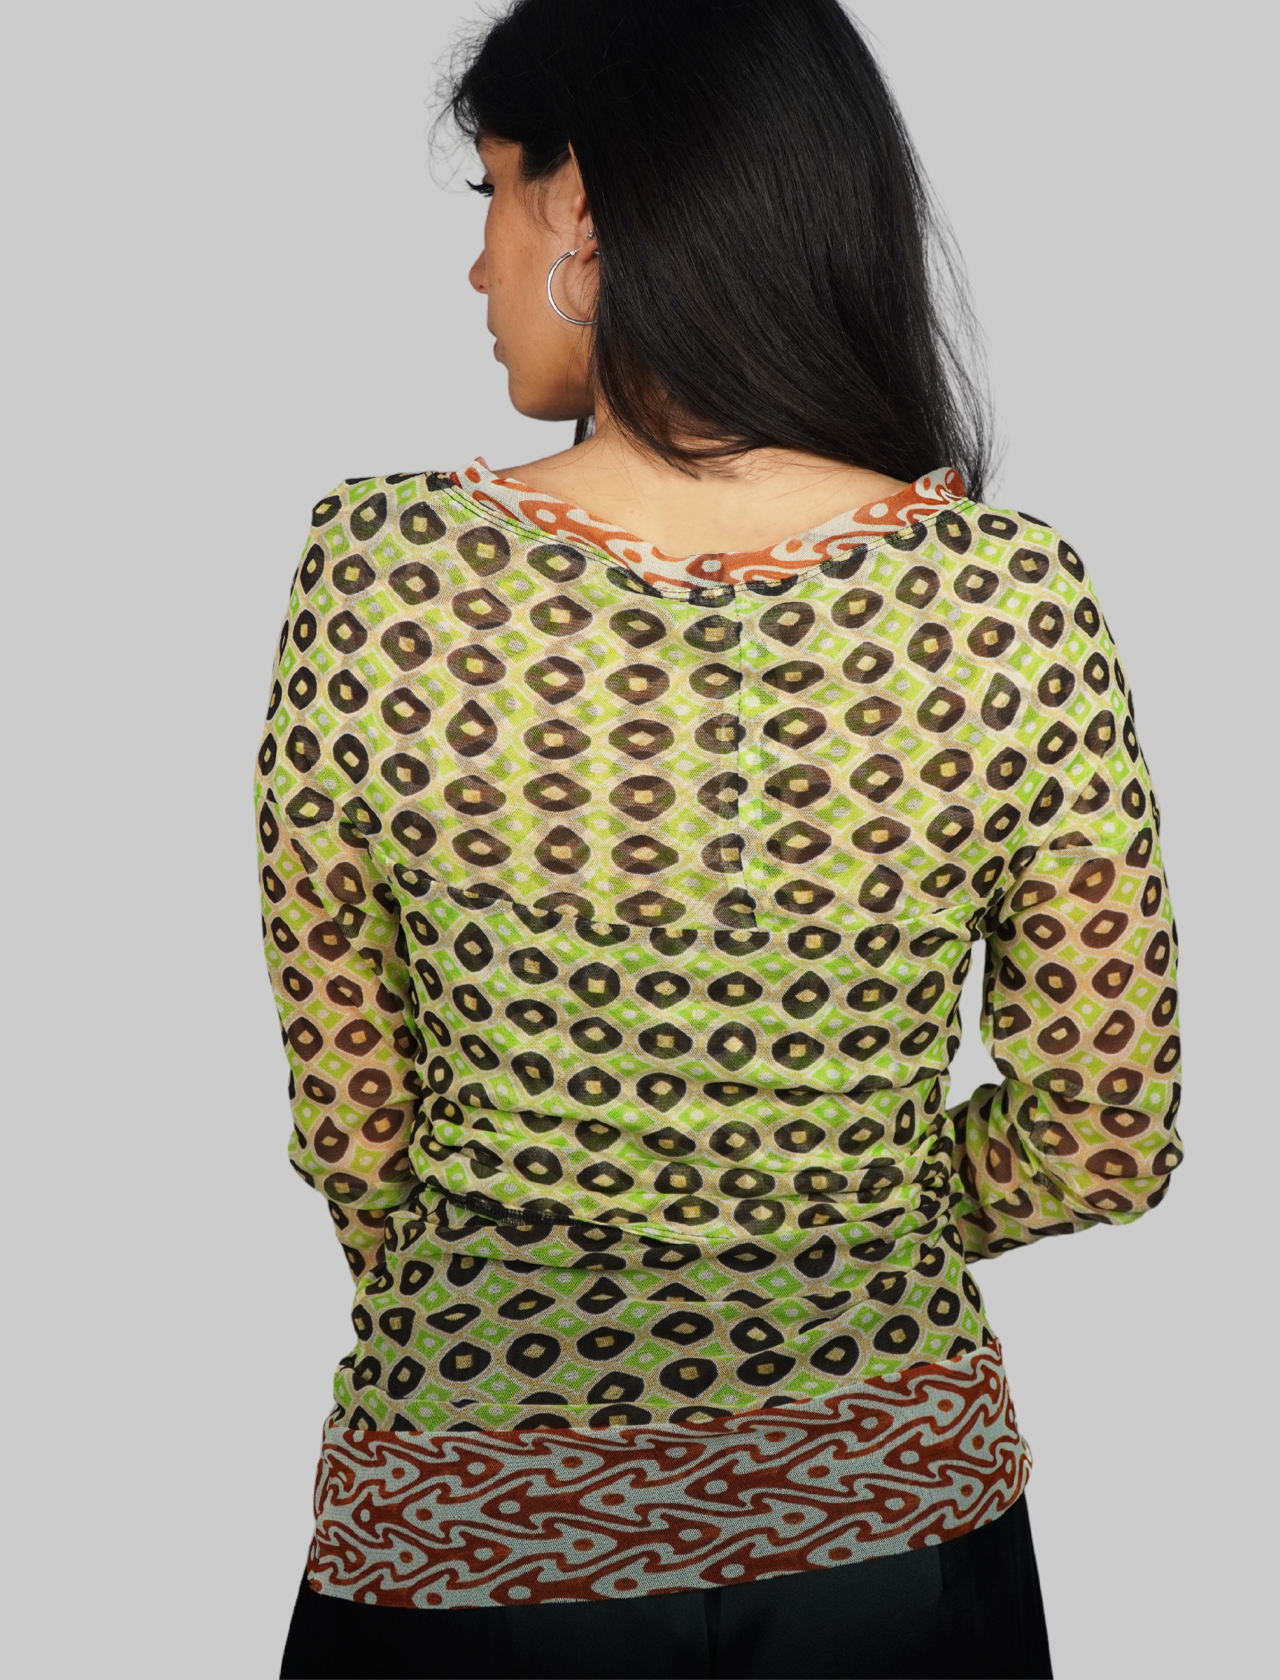 Women's Clothing Long Sleeve Tribal Dance T-shirt in Green and Gold Patterned Tulle Maliparmi | T-shirts and Tops | JK020470494C6020